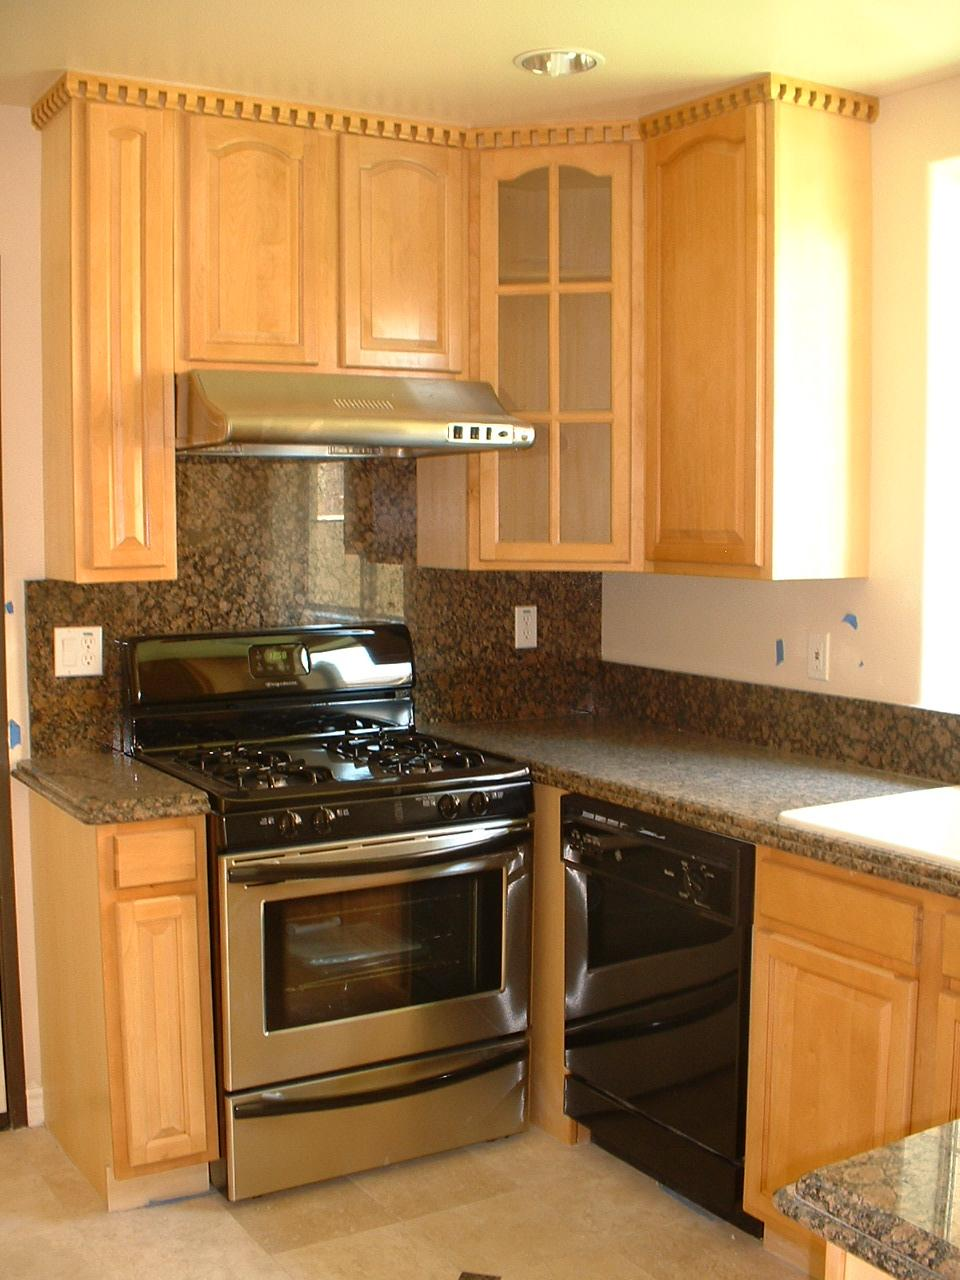 Maple kitchen cabinets with cherry stain home design for Cherry vs maple kitchen cabinets